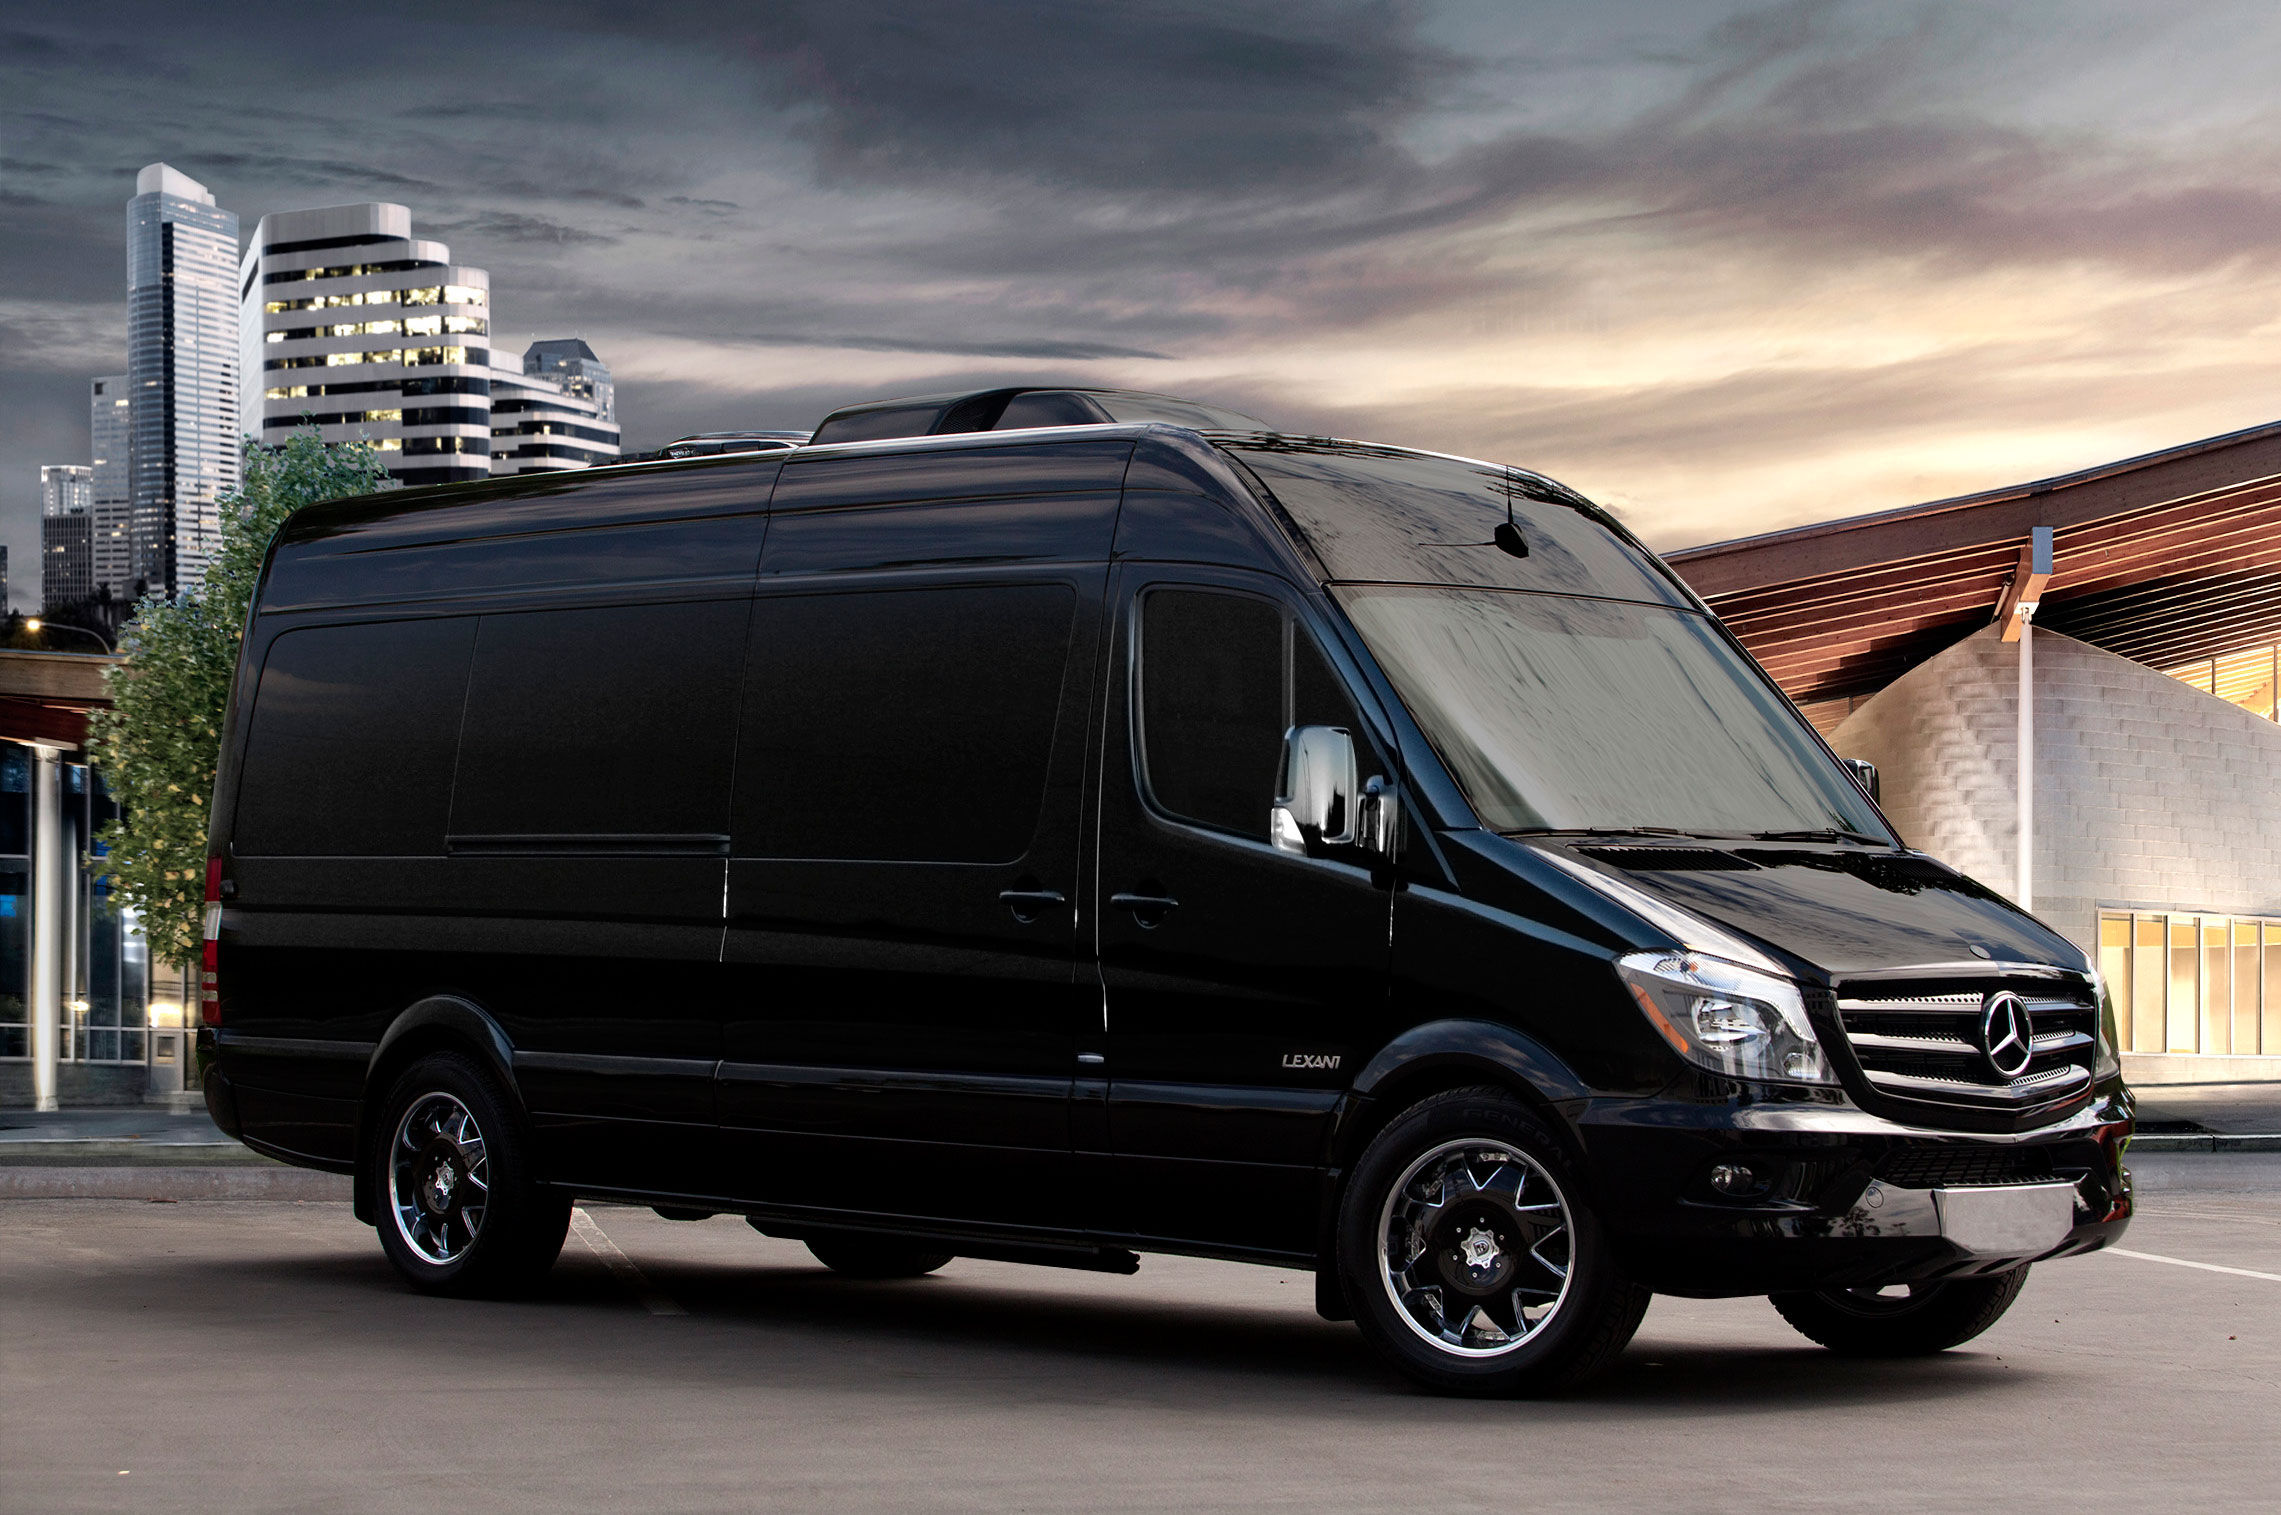 boutique-tours-in-spain/Madrid/car-with-driver-rental-madrid-8/mercedes-benz-sprinter-1-2281x1515.jpg